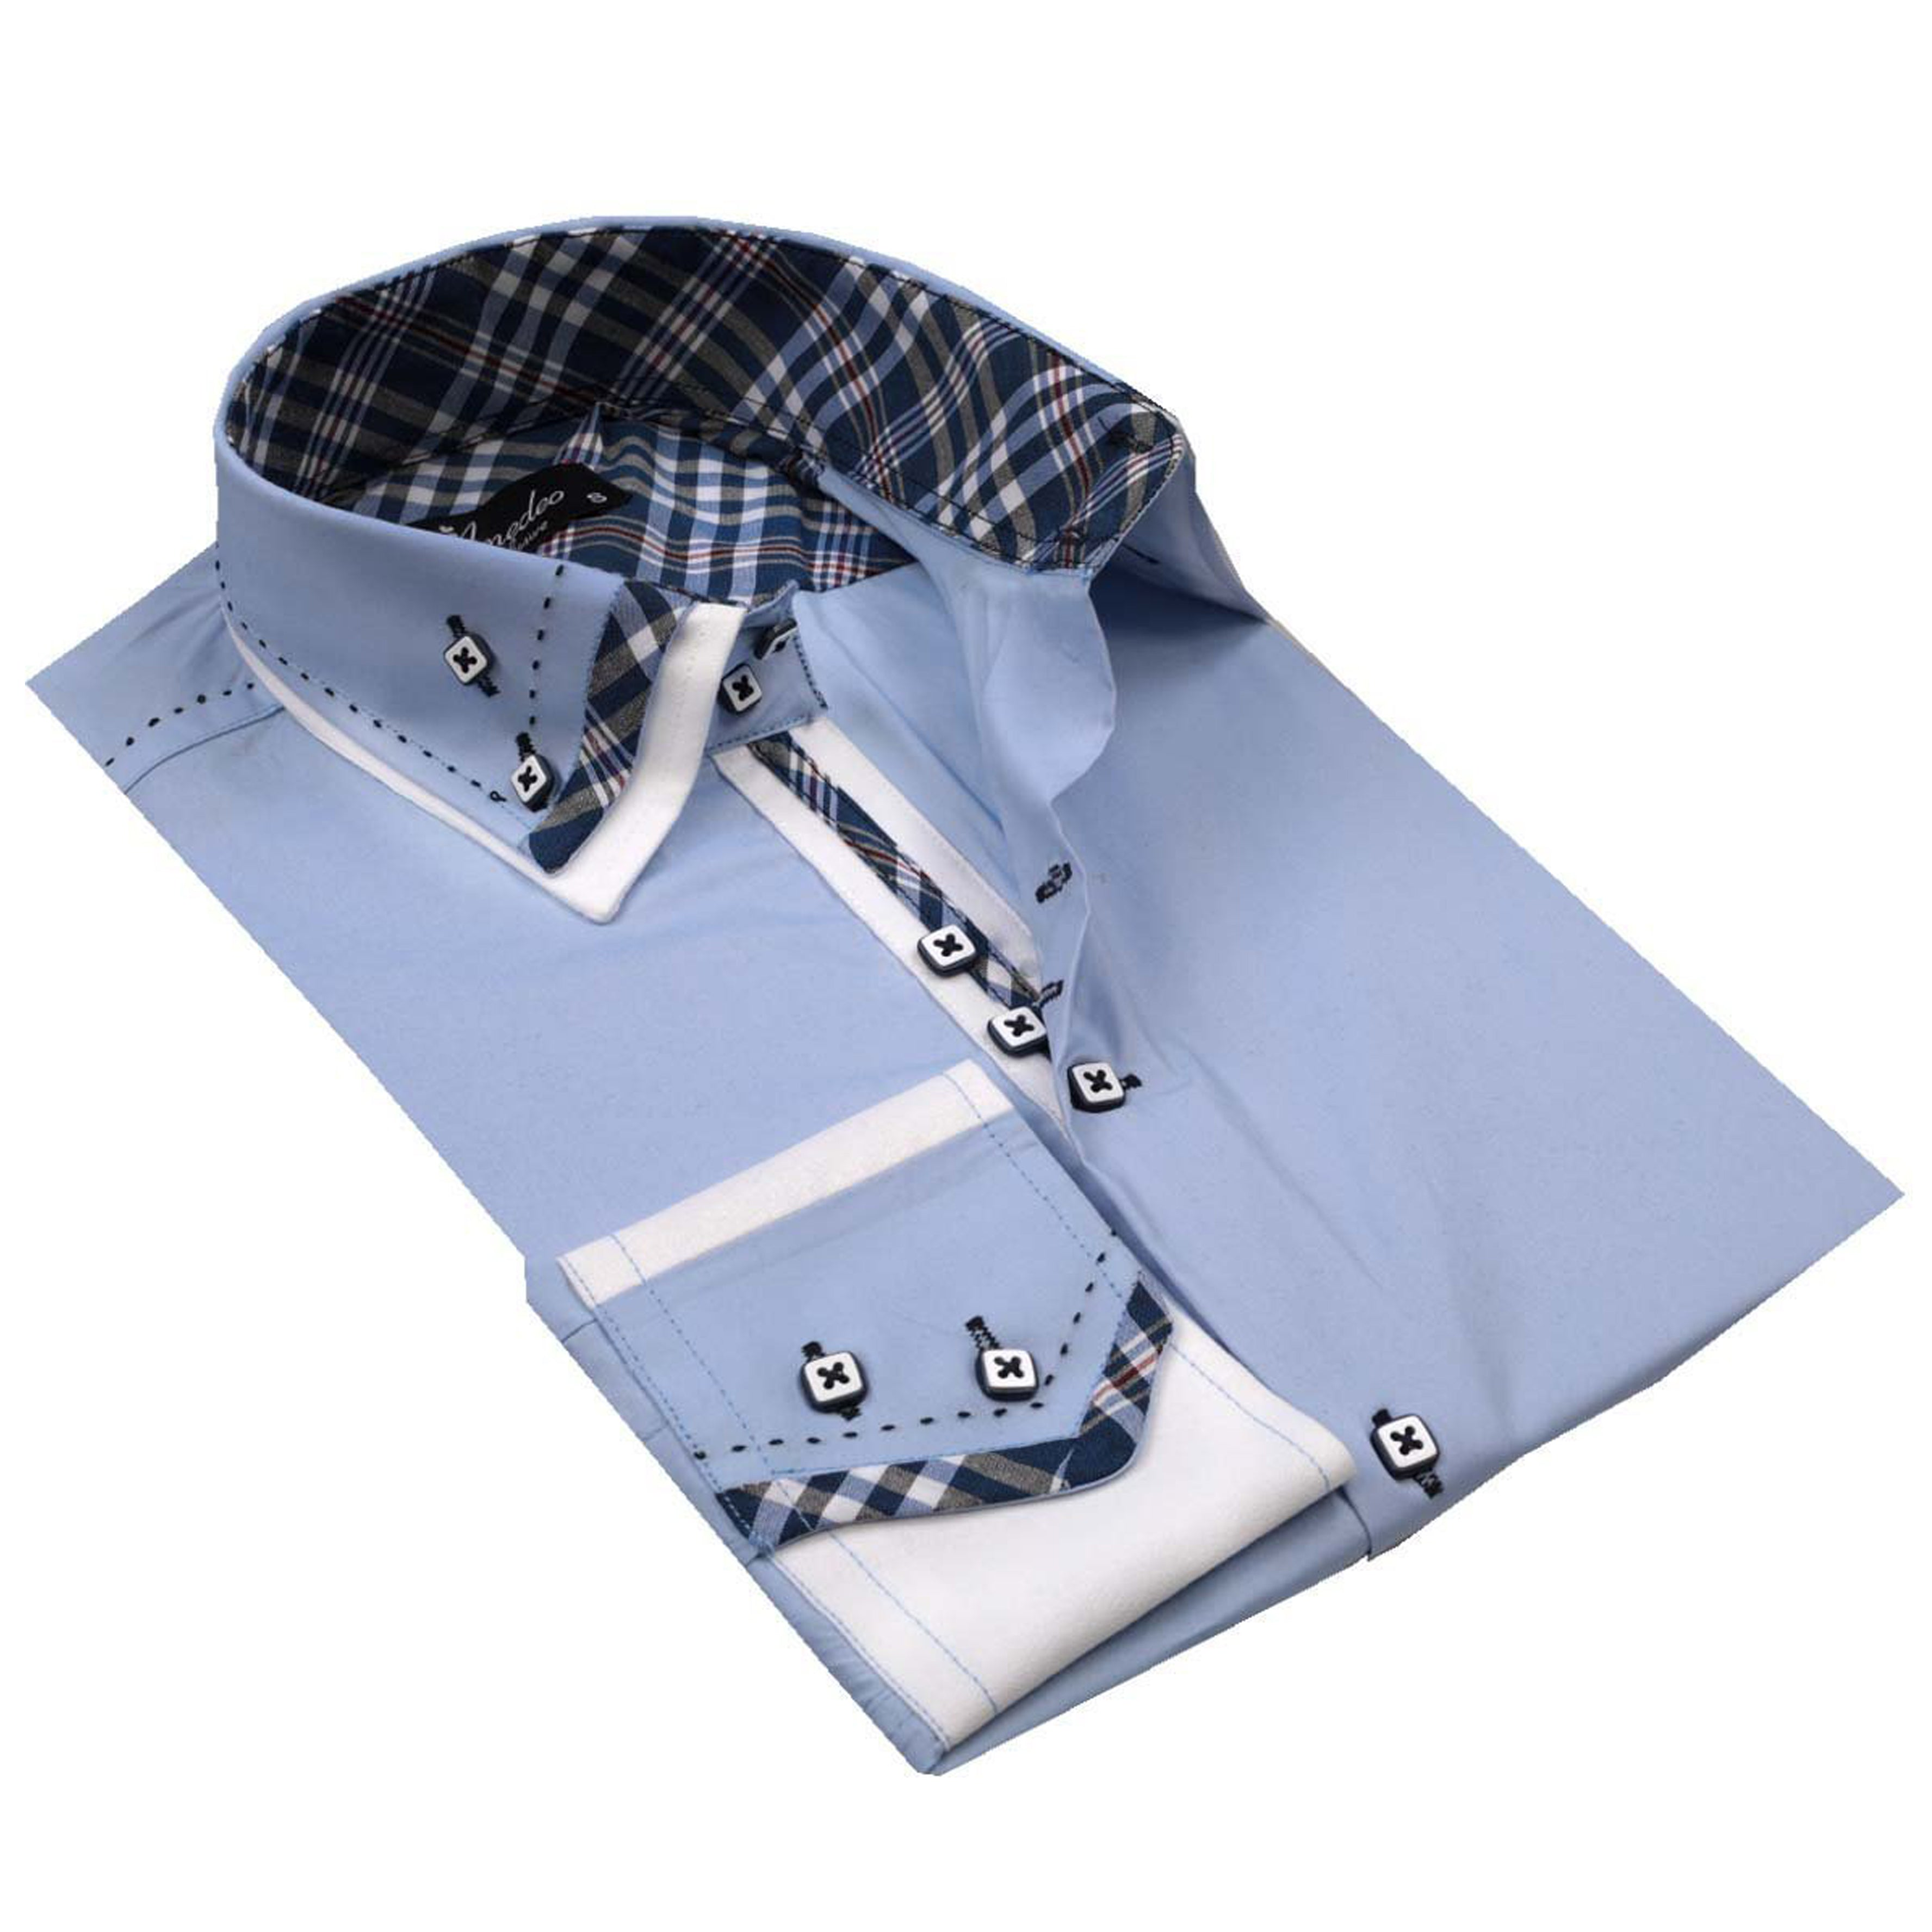 Light Blue Plaid Mens Slim Fit Designer Dress Shirt - tailored Cotton Shirts for Work and Casual Wear - Amedeo Exclusive